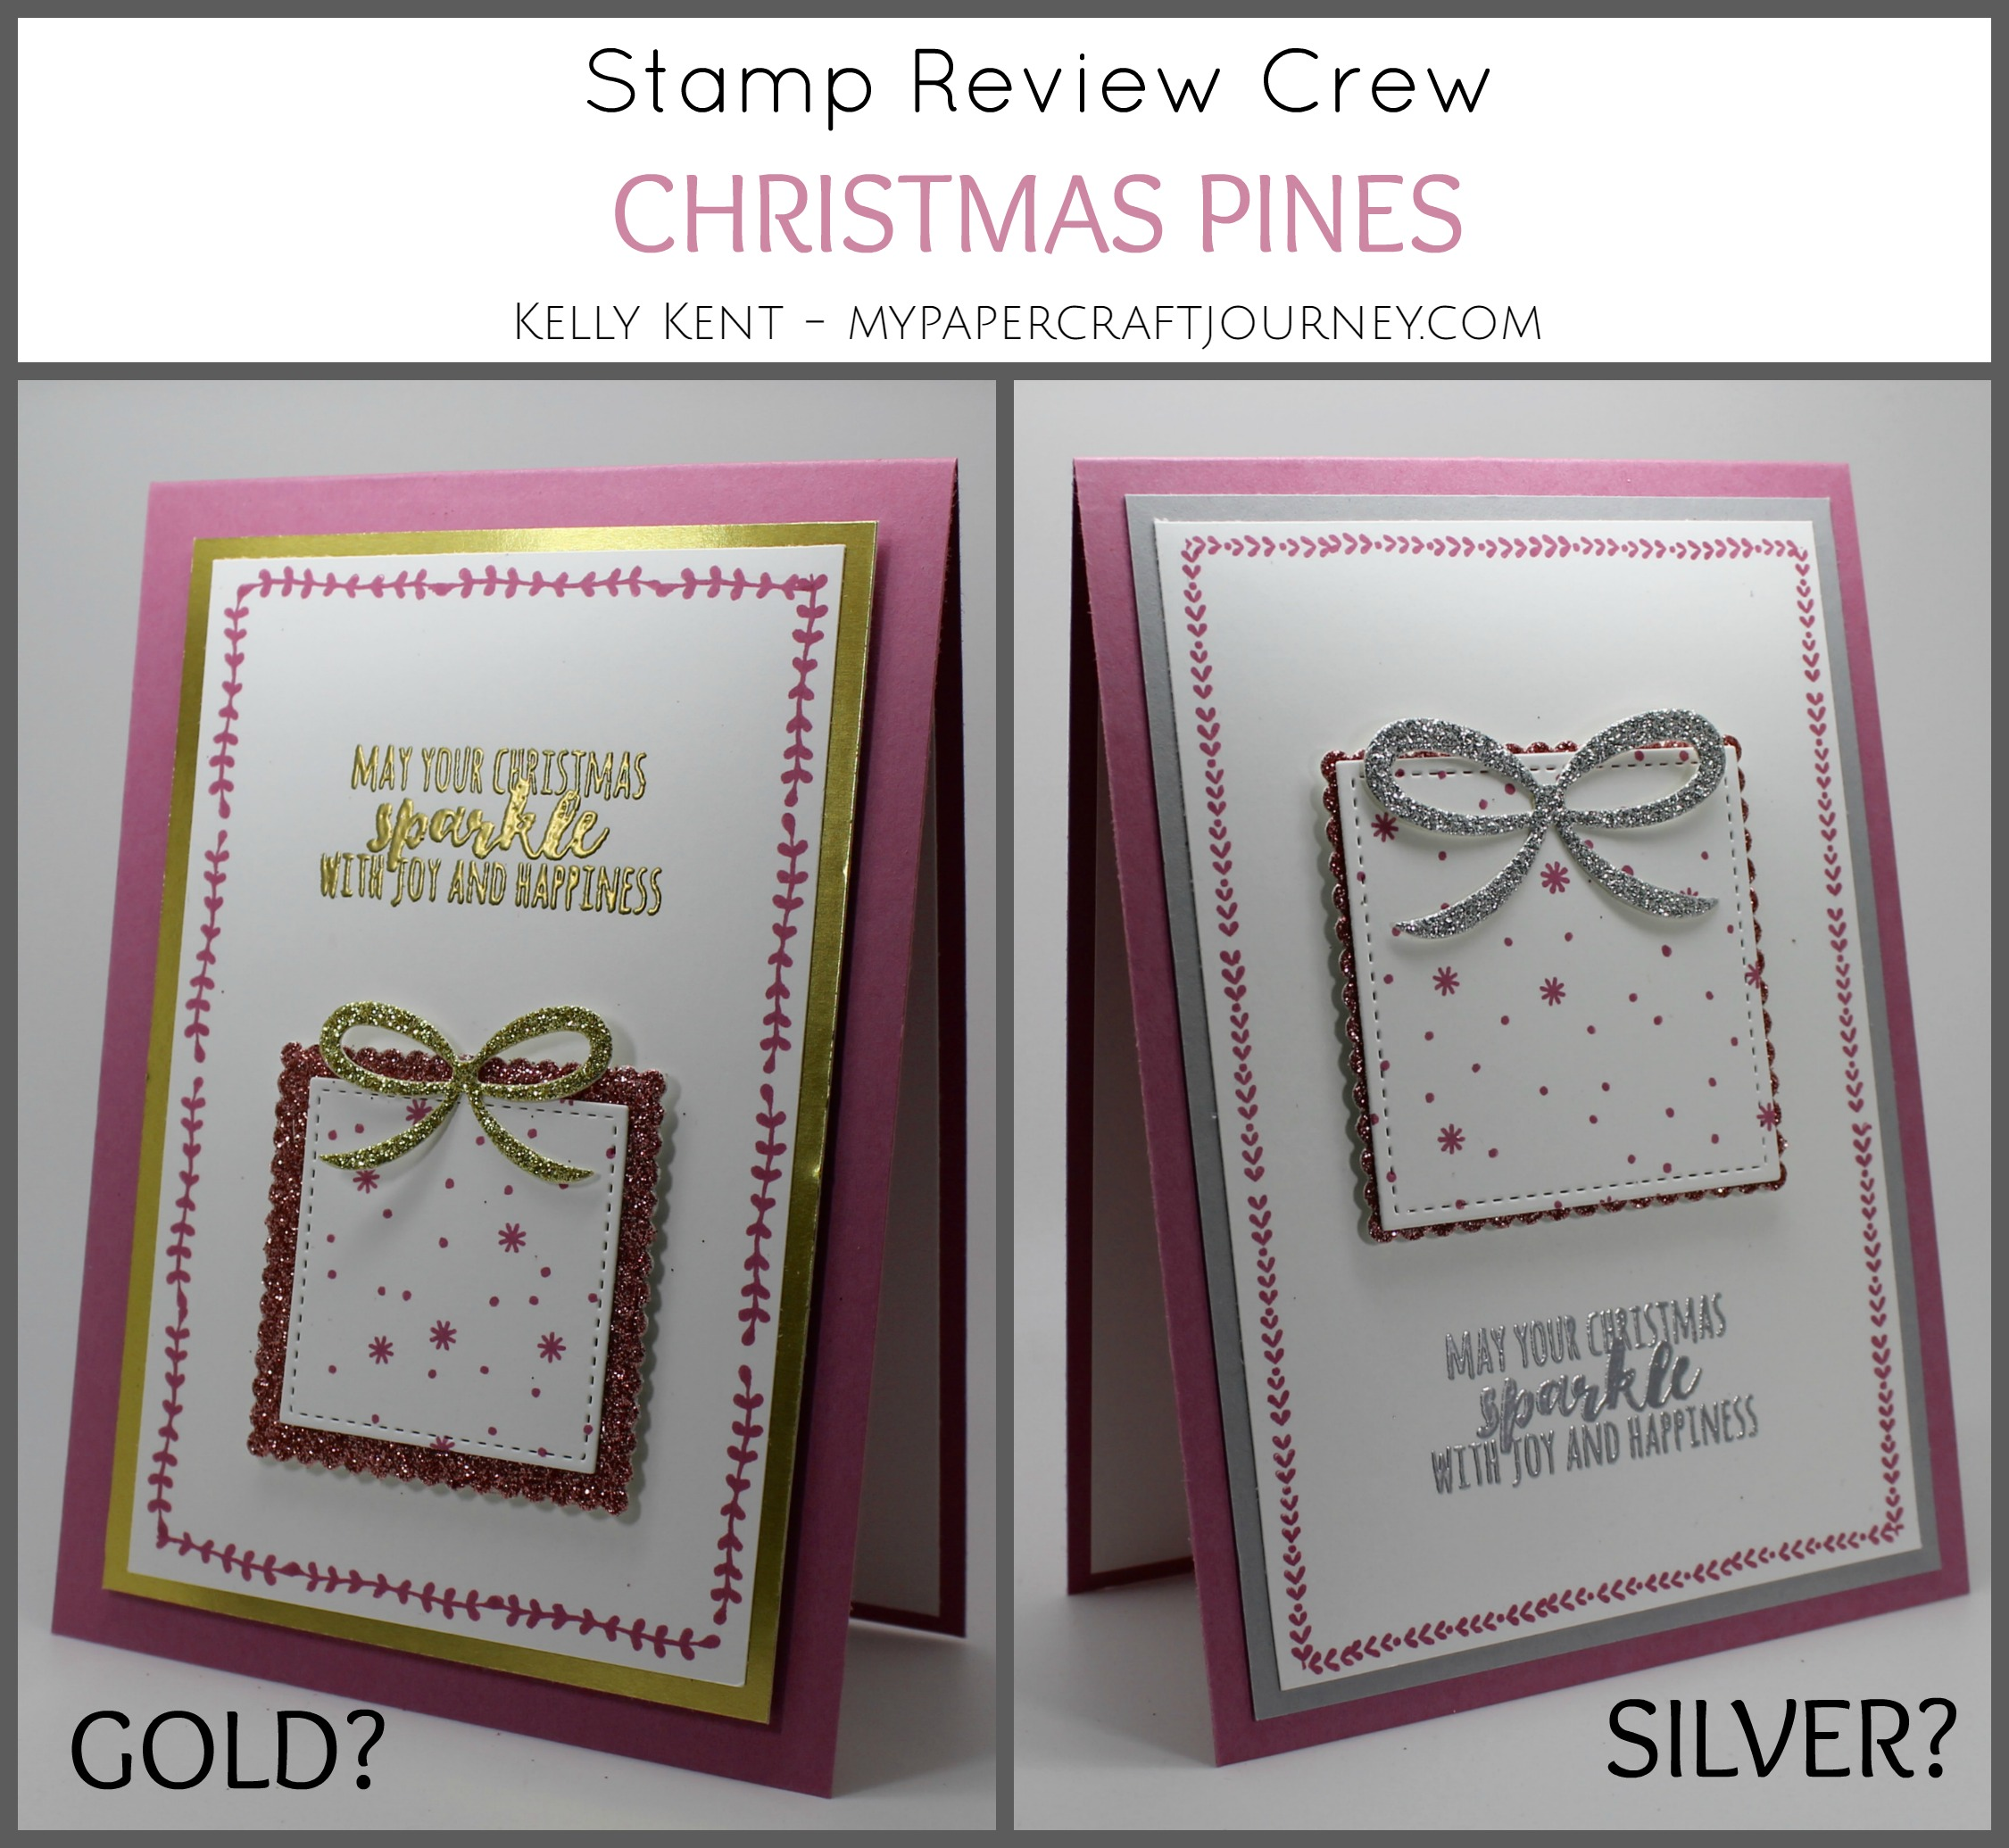 Stamp Review Crew - Christmas Pines. Kelly Kent - mypapercraftjourney.com.